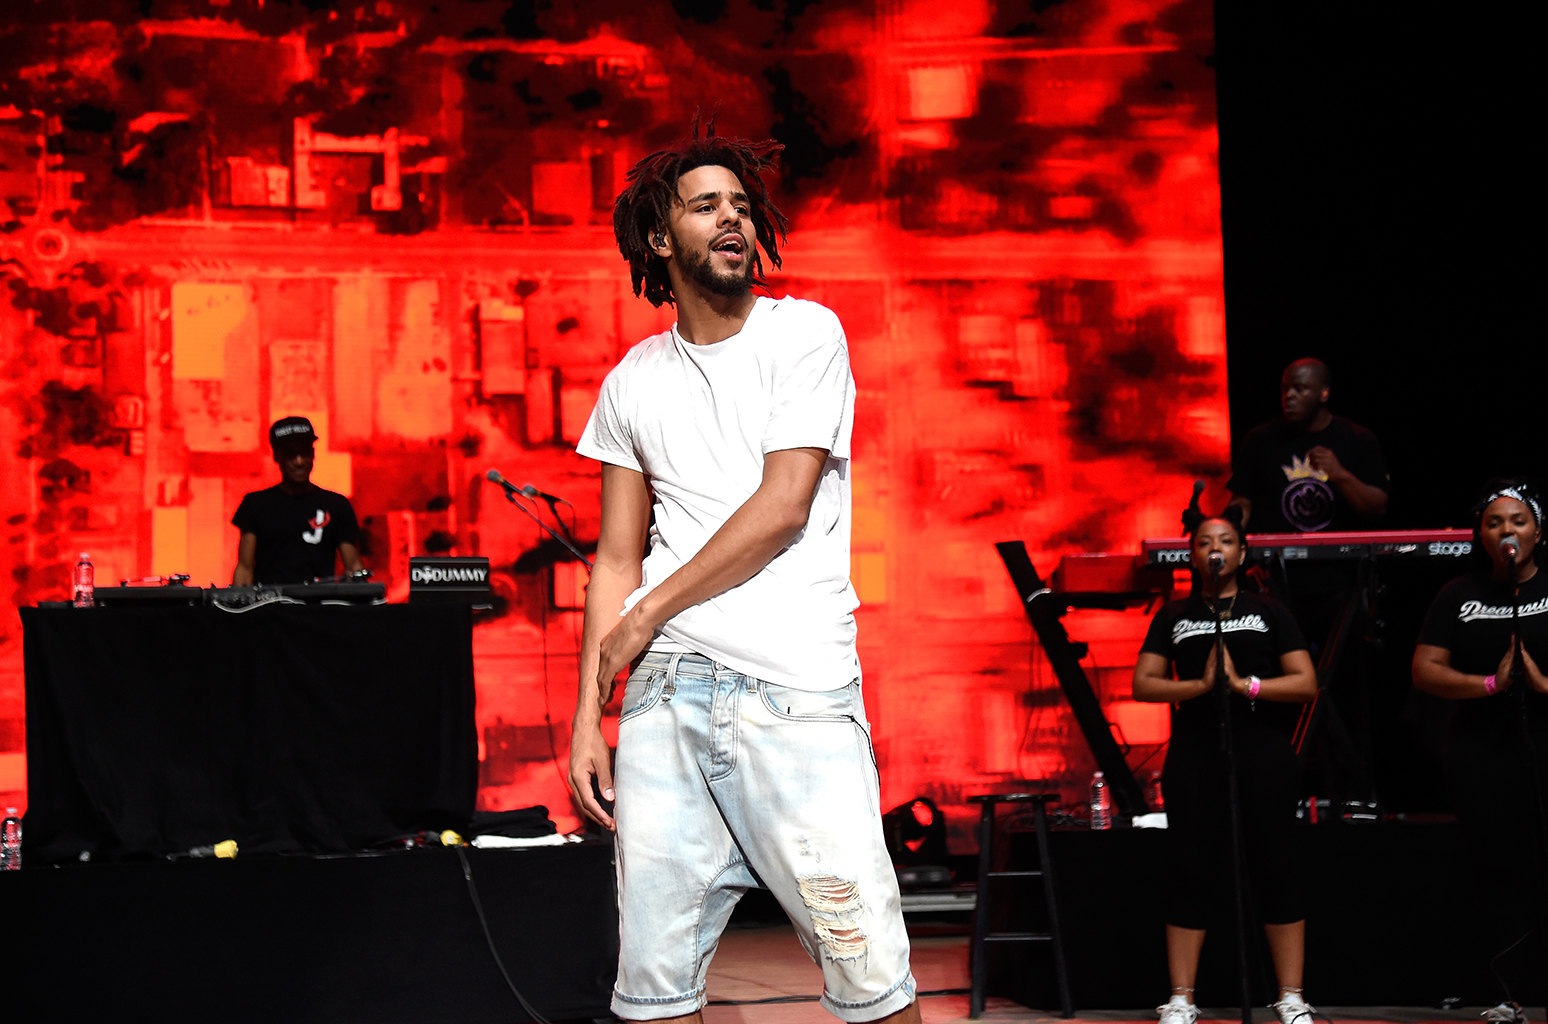 chad da don Listen To Chad Da Don X Zingah X Focalistic X DJ Venom's New 'Makasana2Sandton' Joint 01 j cole hot 100 fest performance 2016 billboard 1548